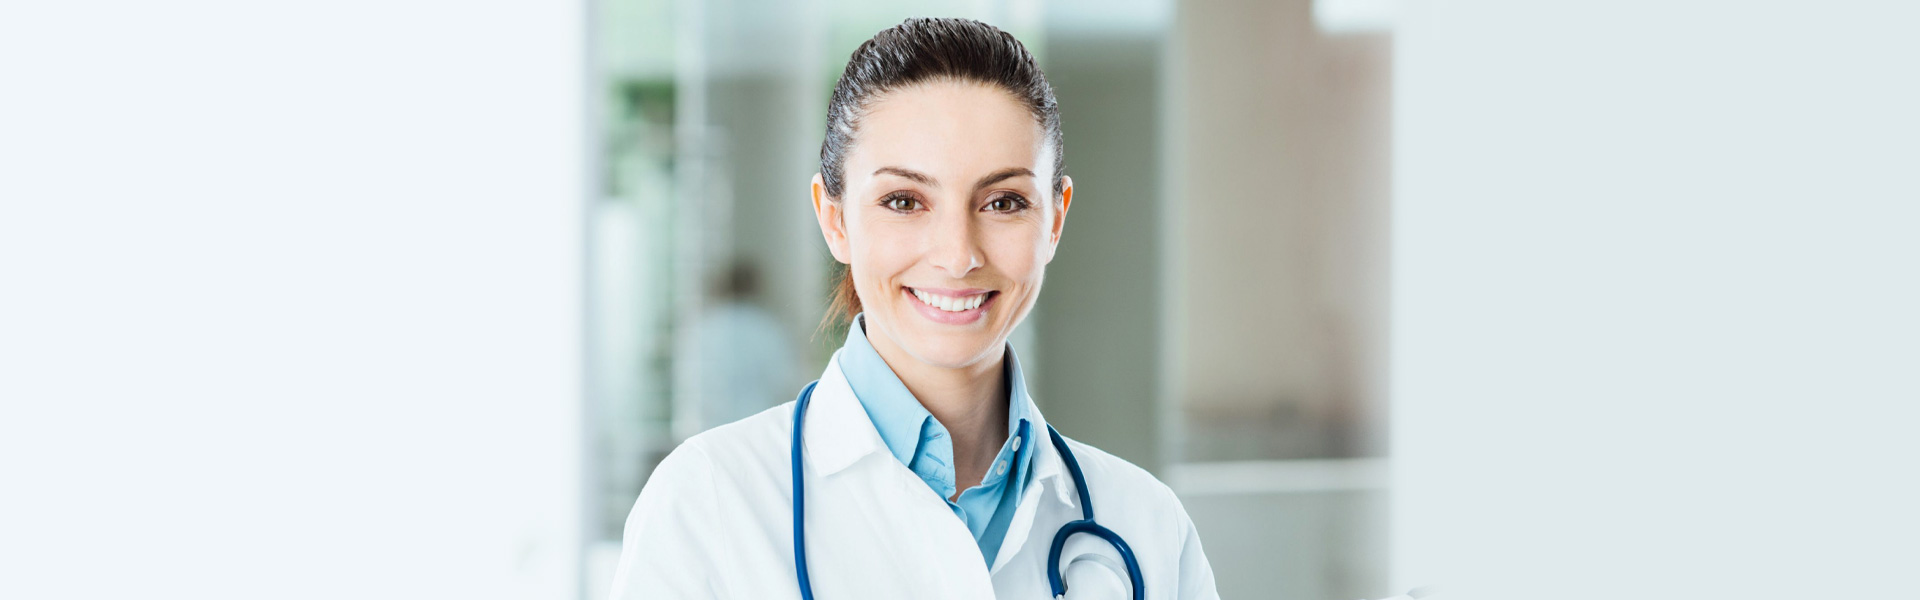 Occupational/Industrial Medicine Specialist: What Is the Role of the Professional?